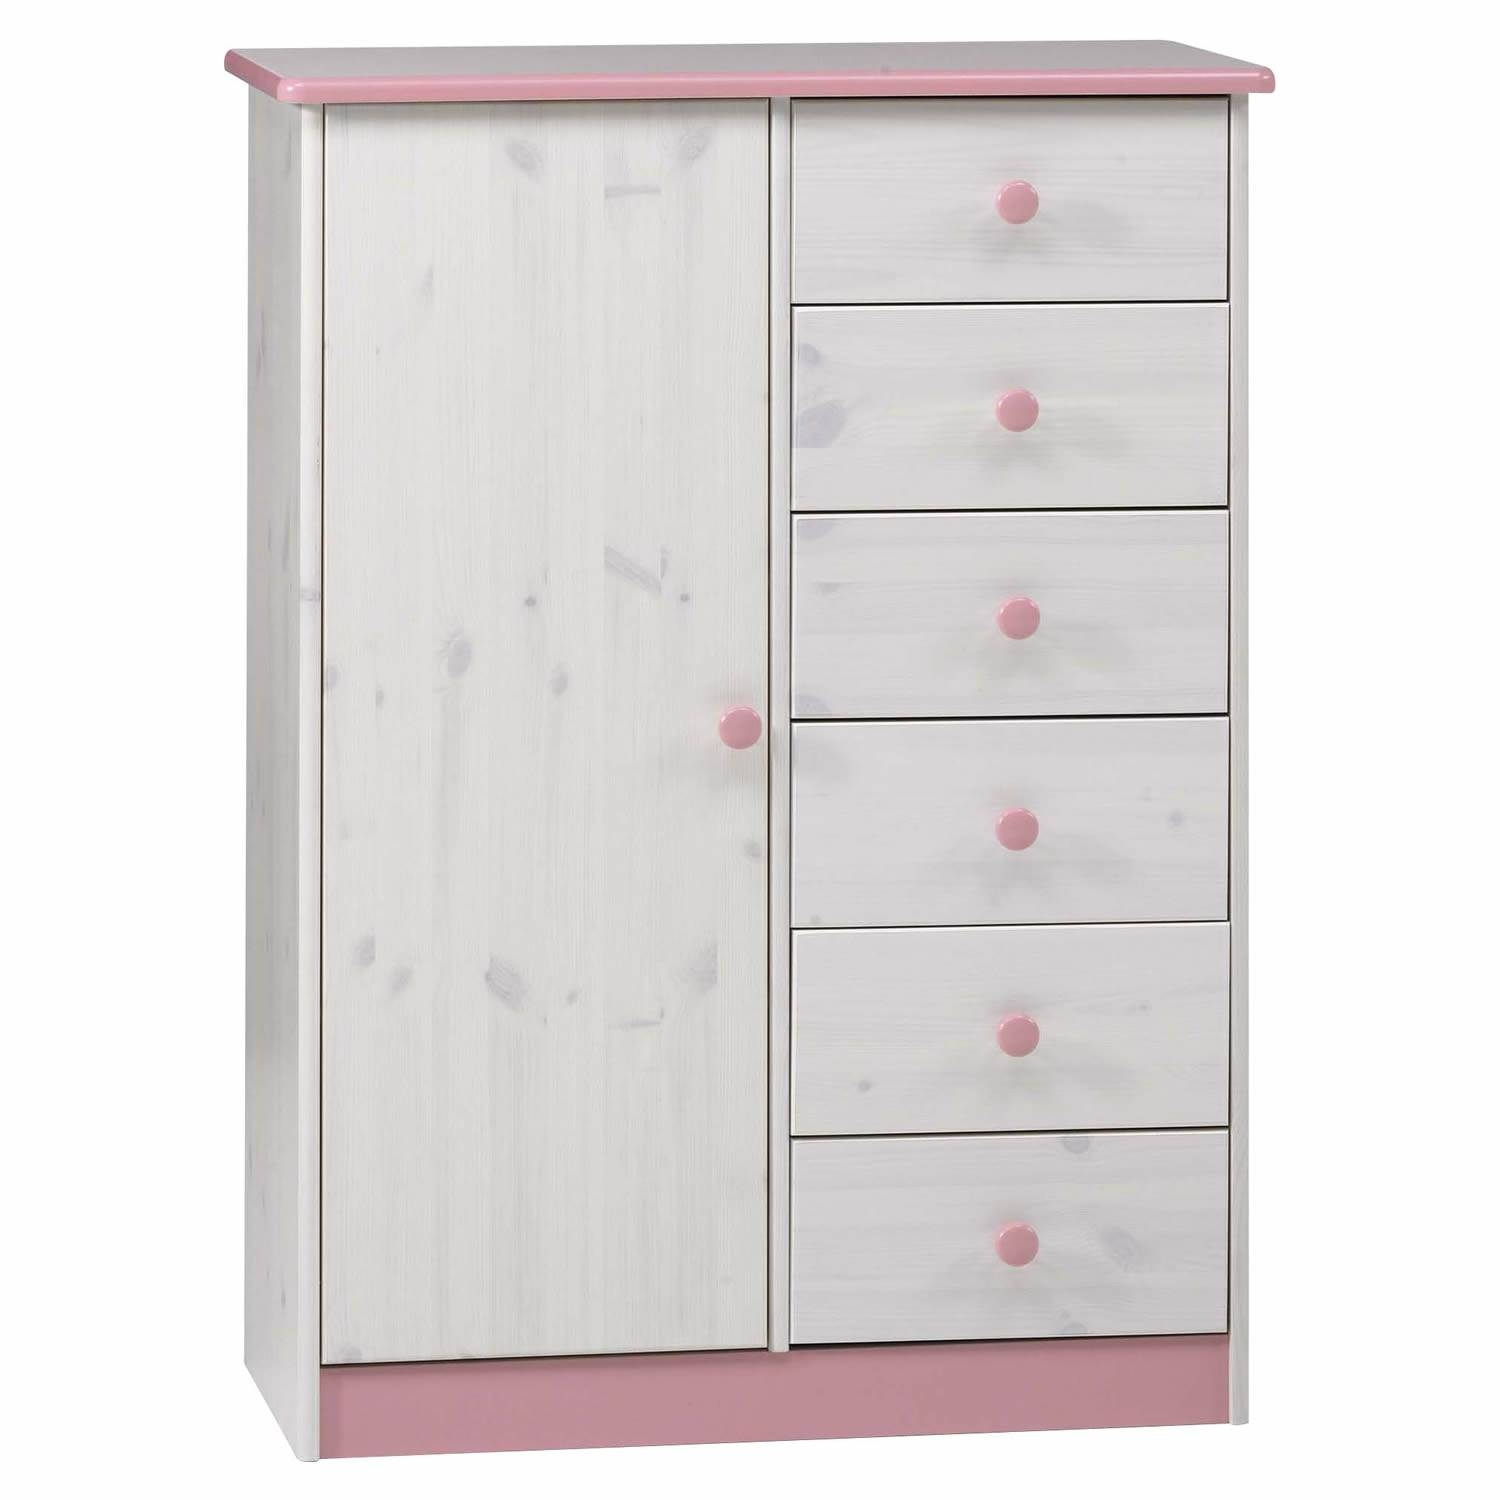 Wardrobes, Beds And Complete Bedrooom Furniture Sets At More Than throughout Wardrobes Chest Of Drawers Combination (Image 15 of 15)